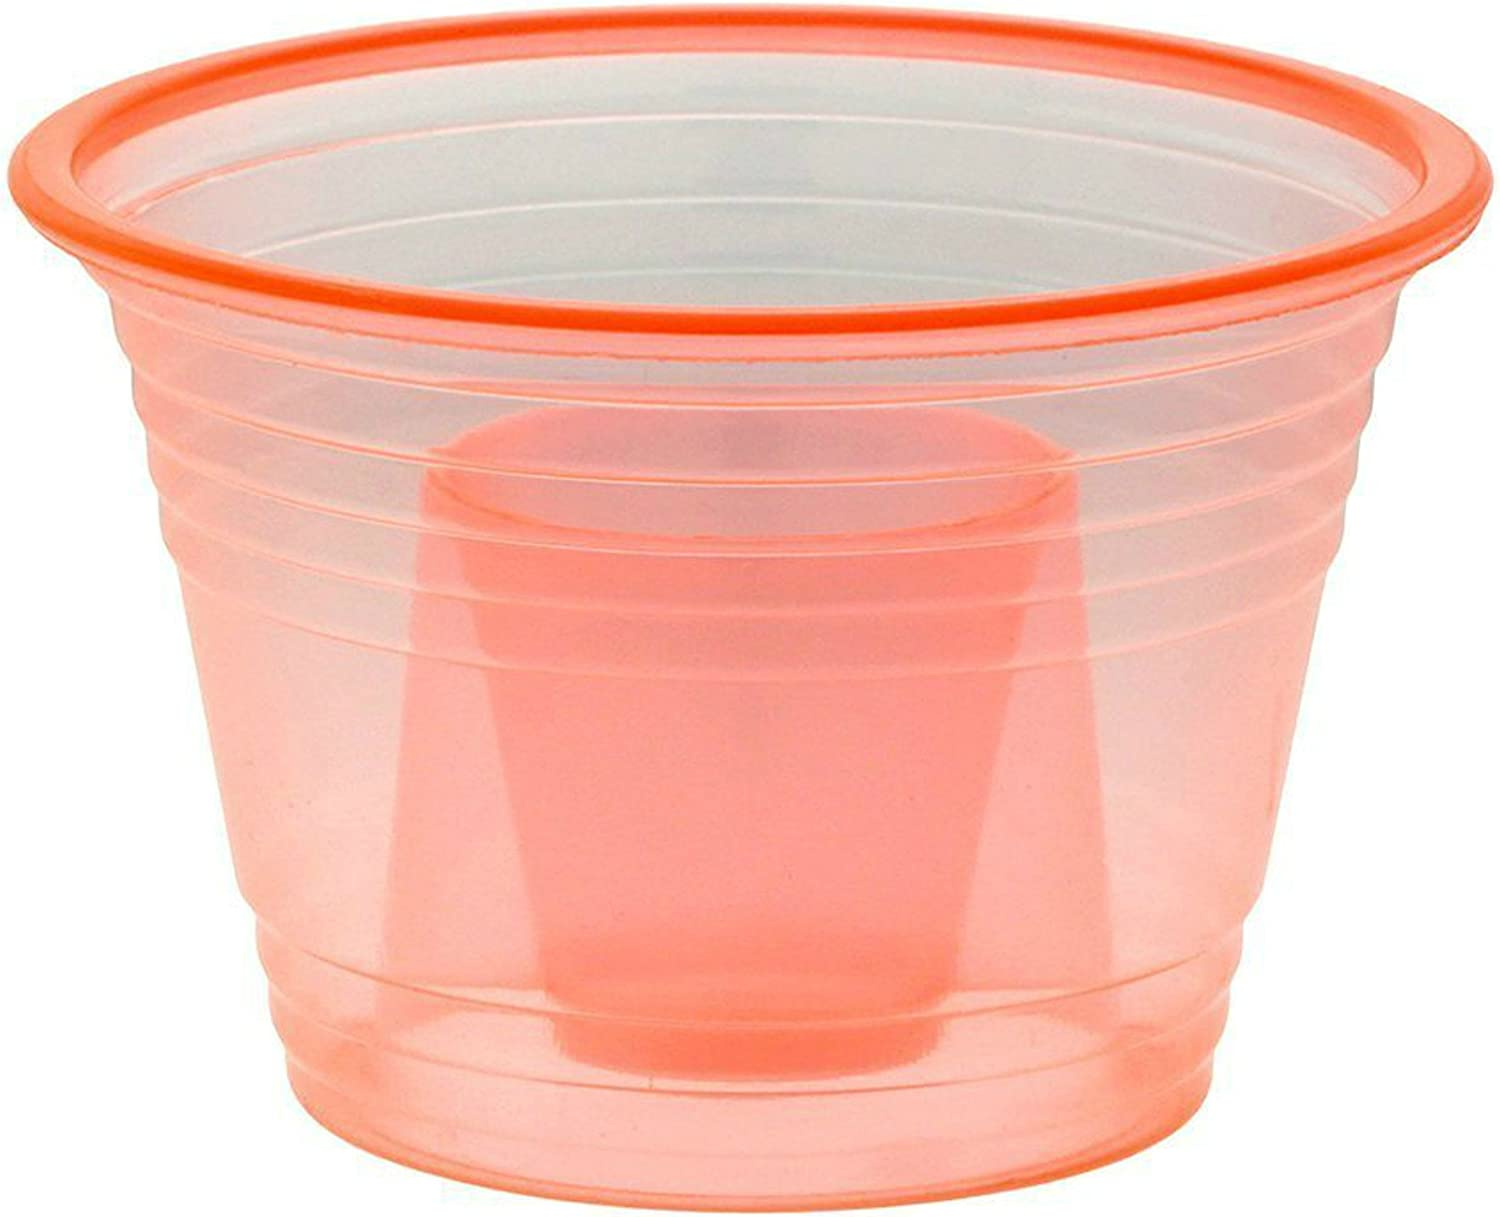 1000 Red Pink Jager Bomb Blaster Power Shot Glass Disposable Plastic Cup Case